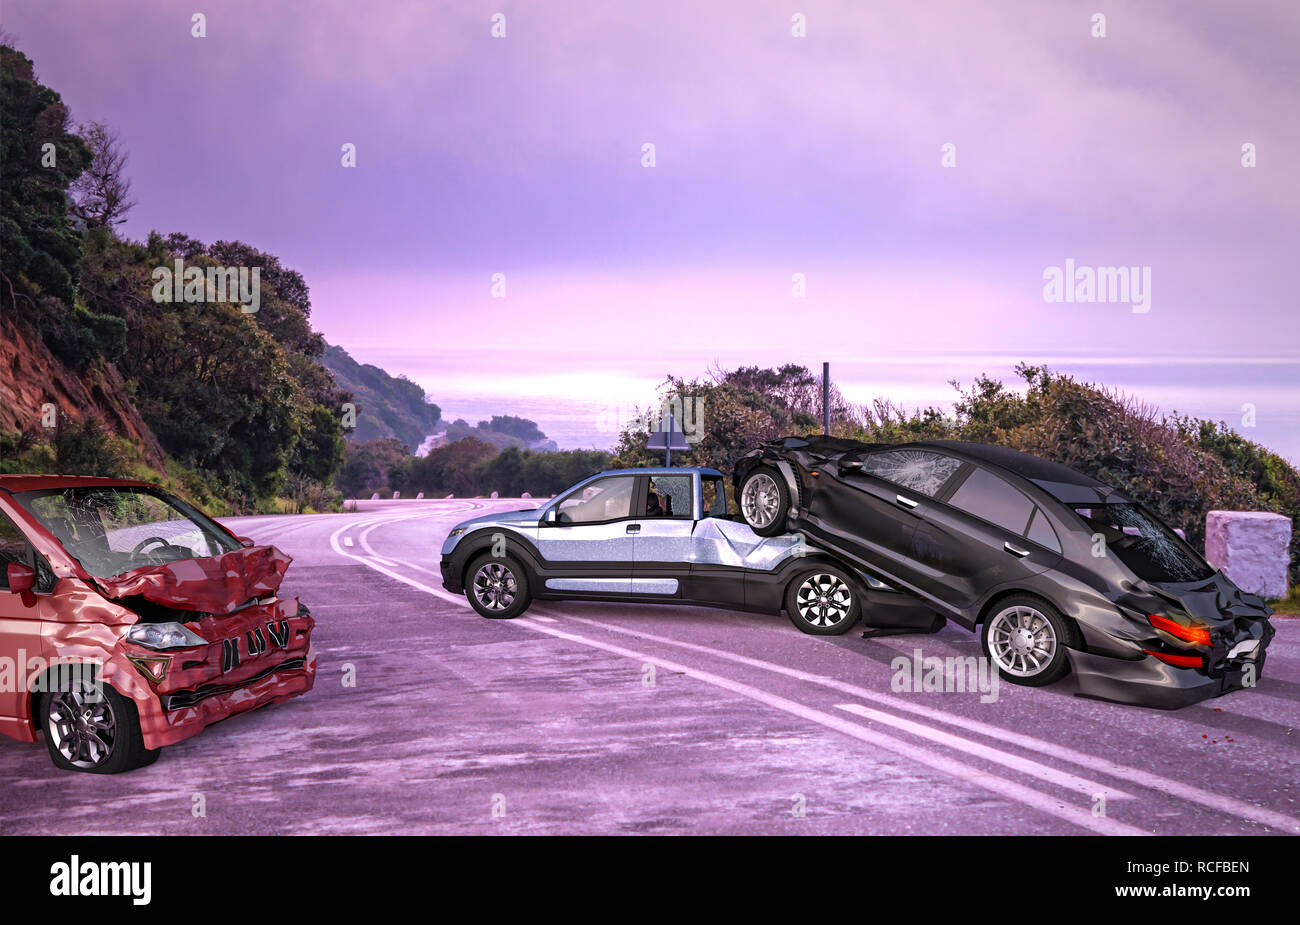 Three cars accident. A van, a pick up and a luxury sedan crashed on the road on location with environment. - Stock Image